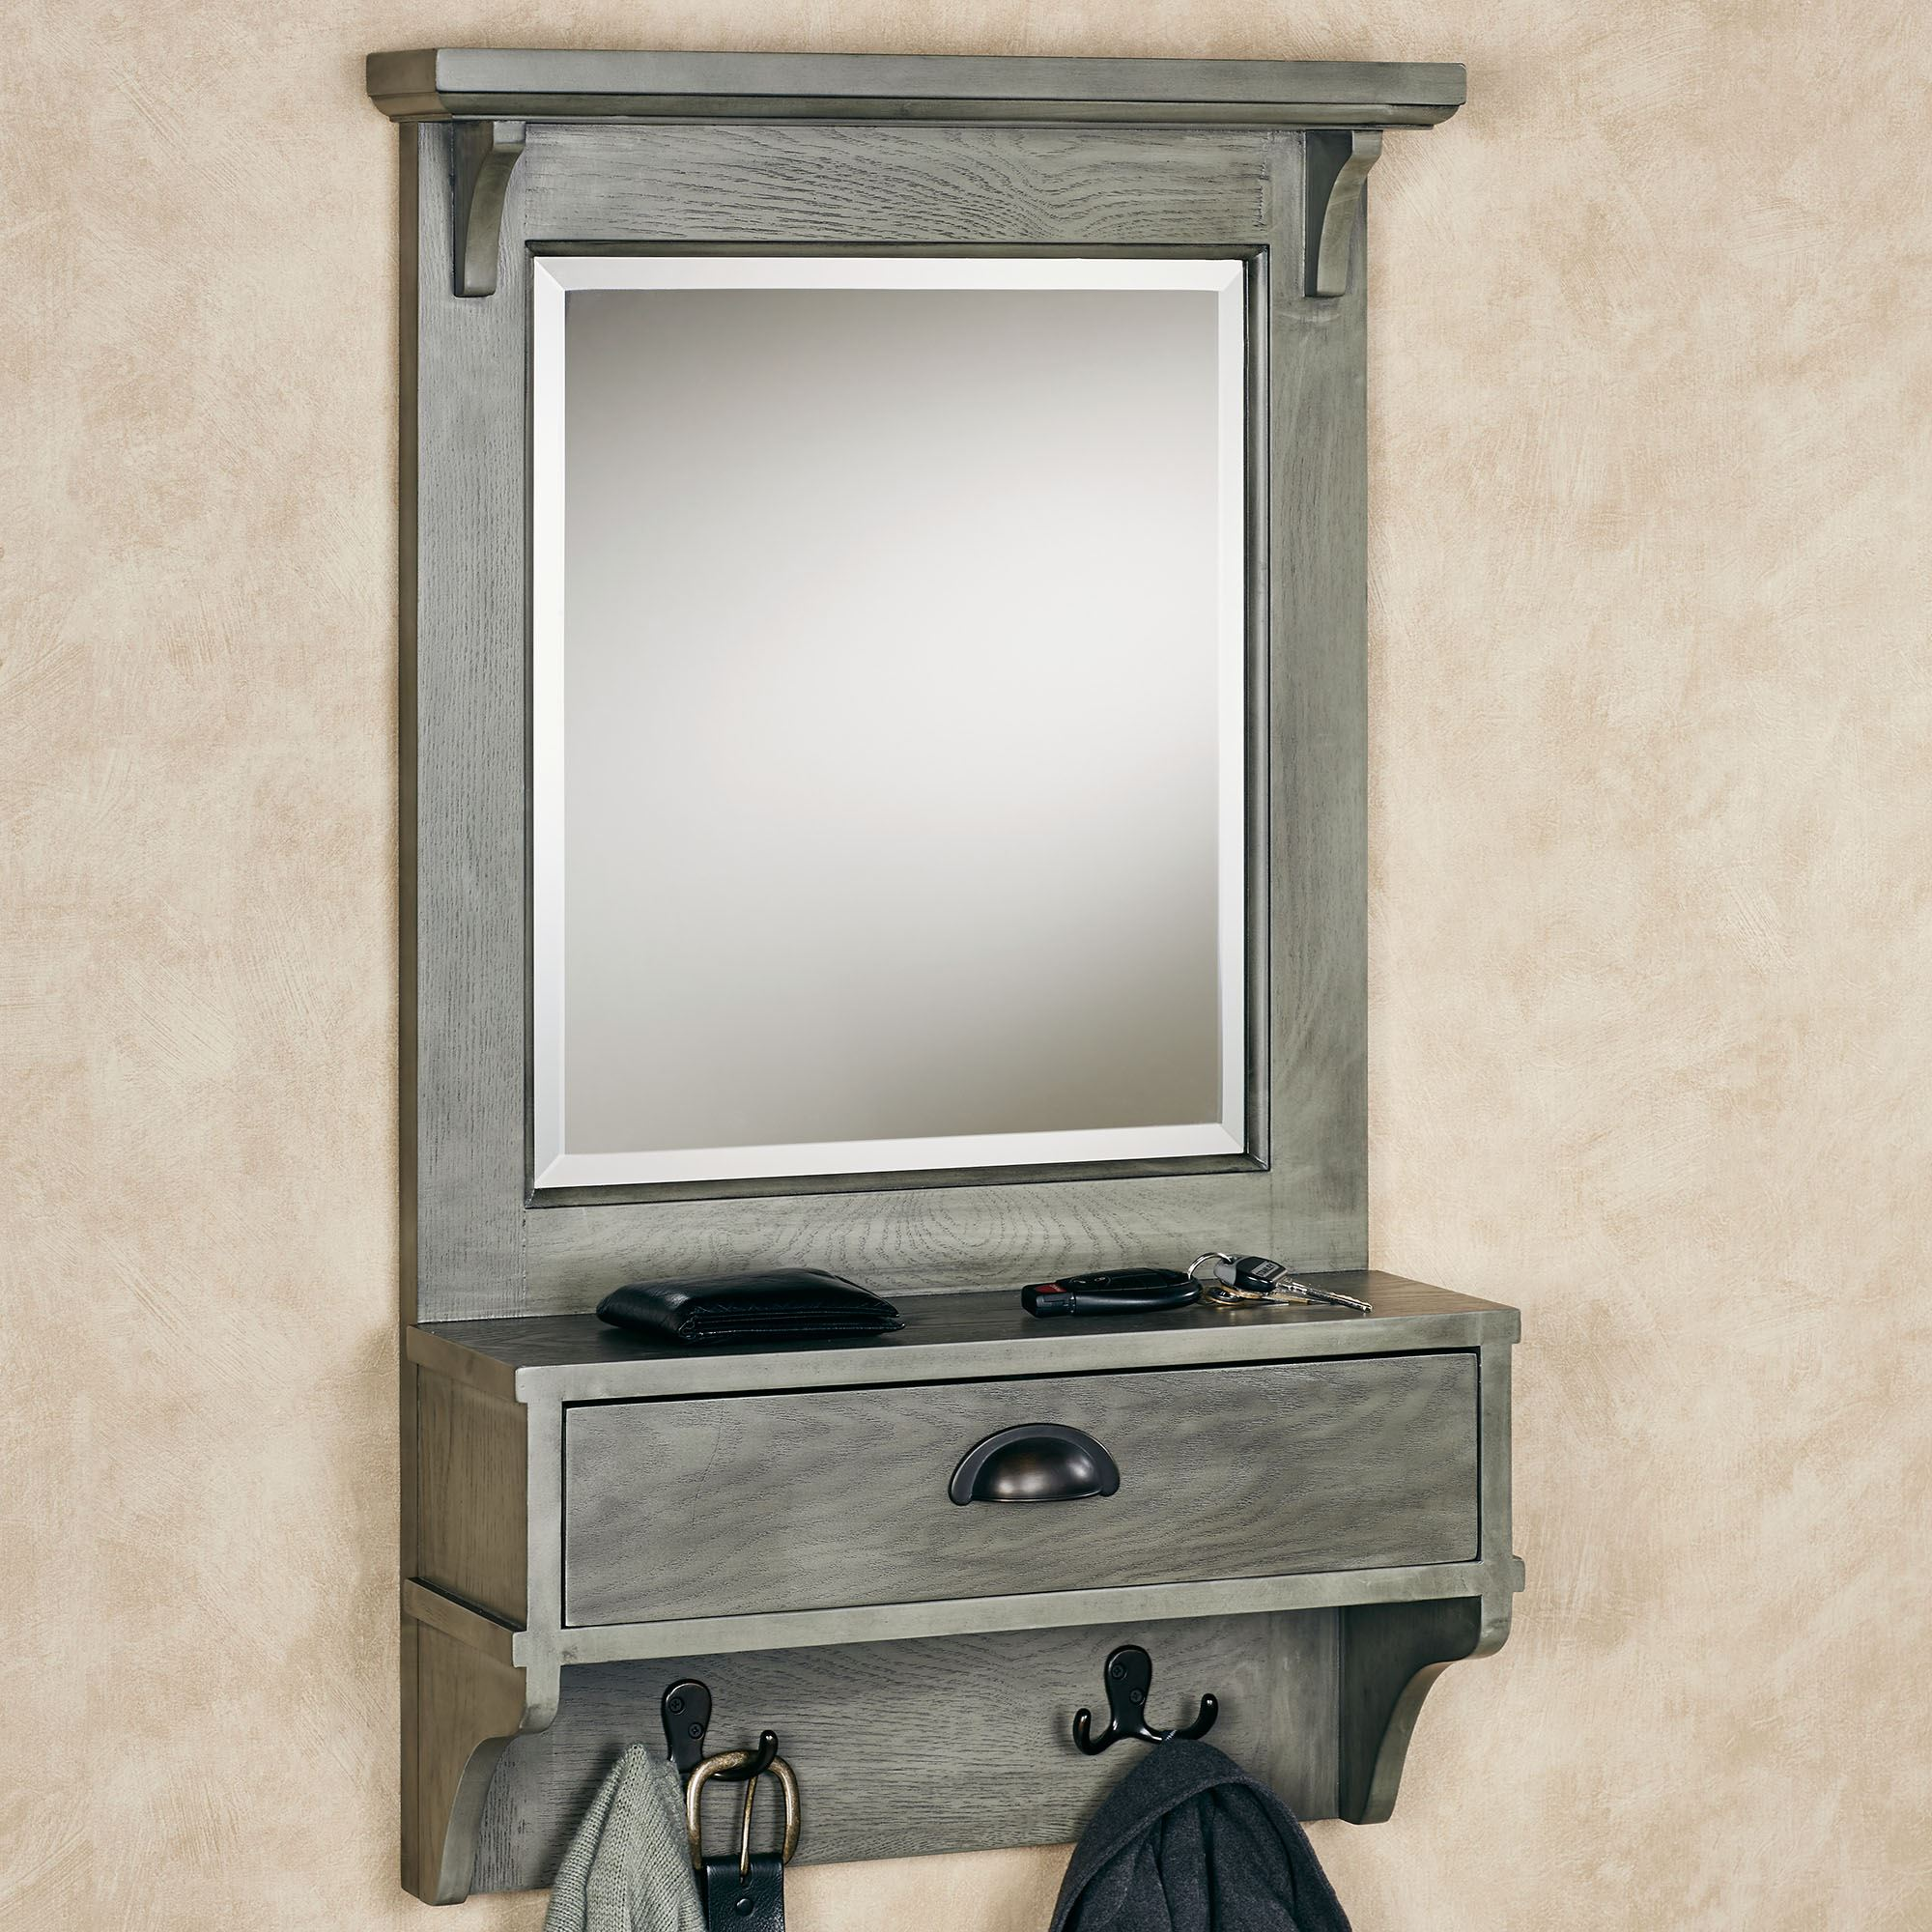 Karter Gray Mirrored Wall Shelf With